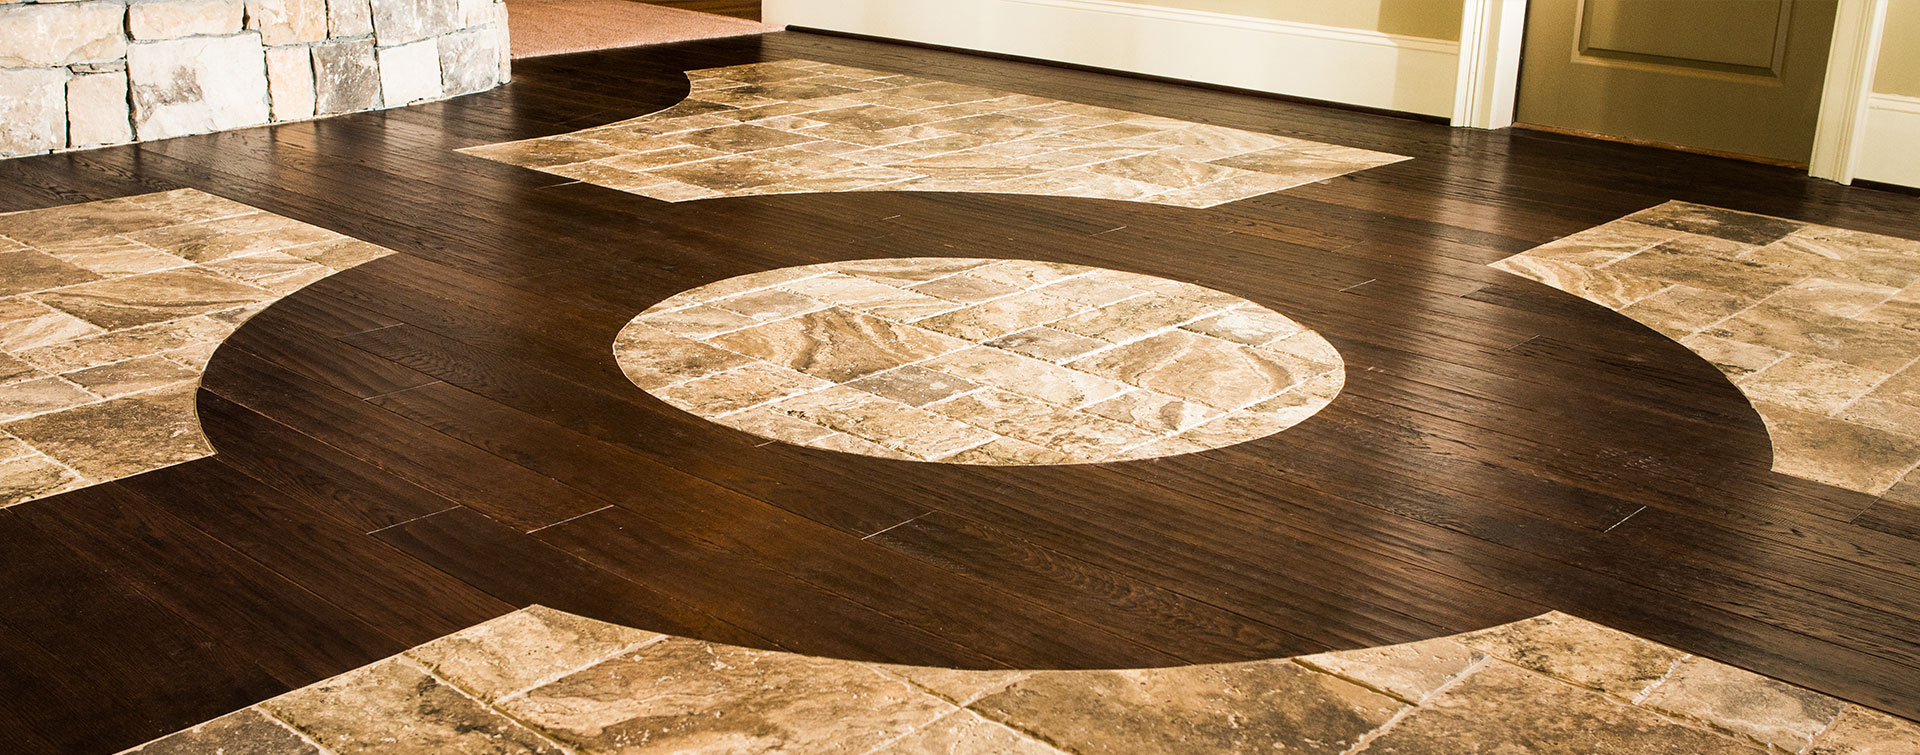 Home incredible floors construction services suwanee Unique floor tile designs